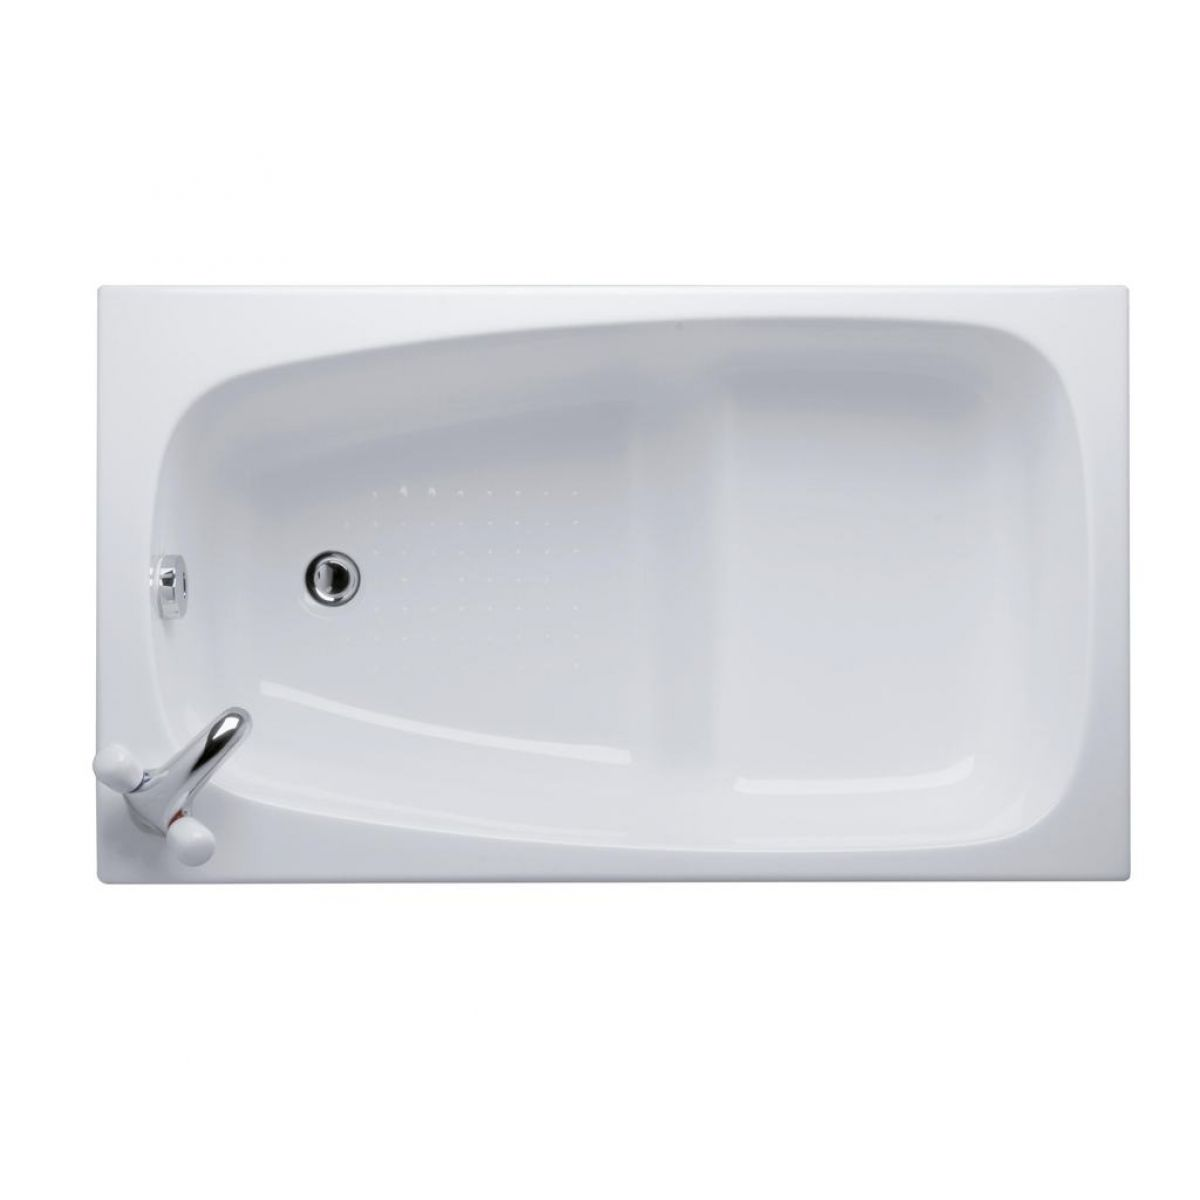 Ideal Standard Space 1200 x 700mm Compact Bath